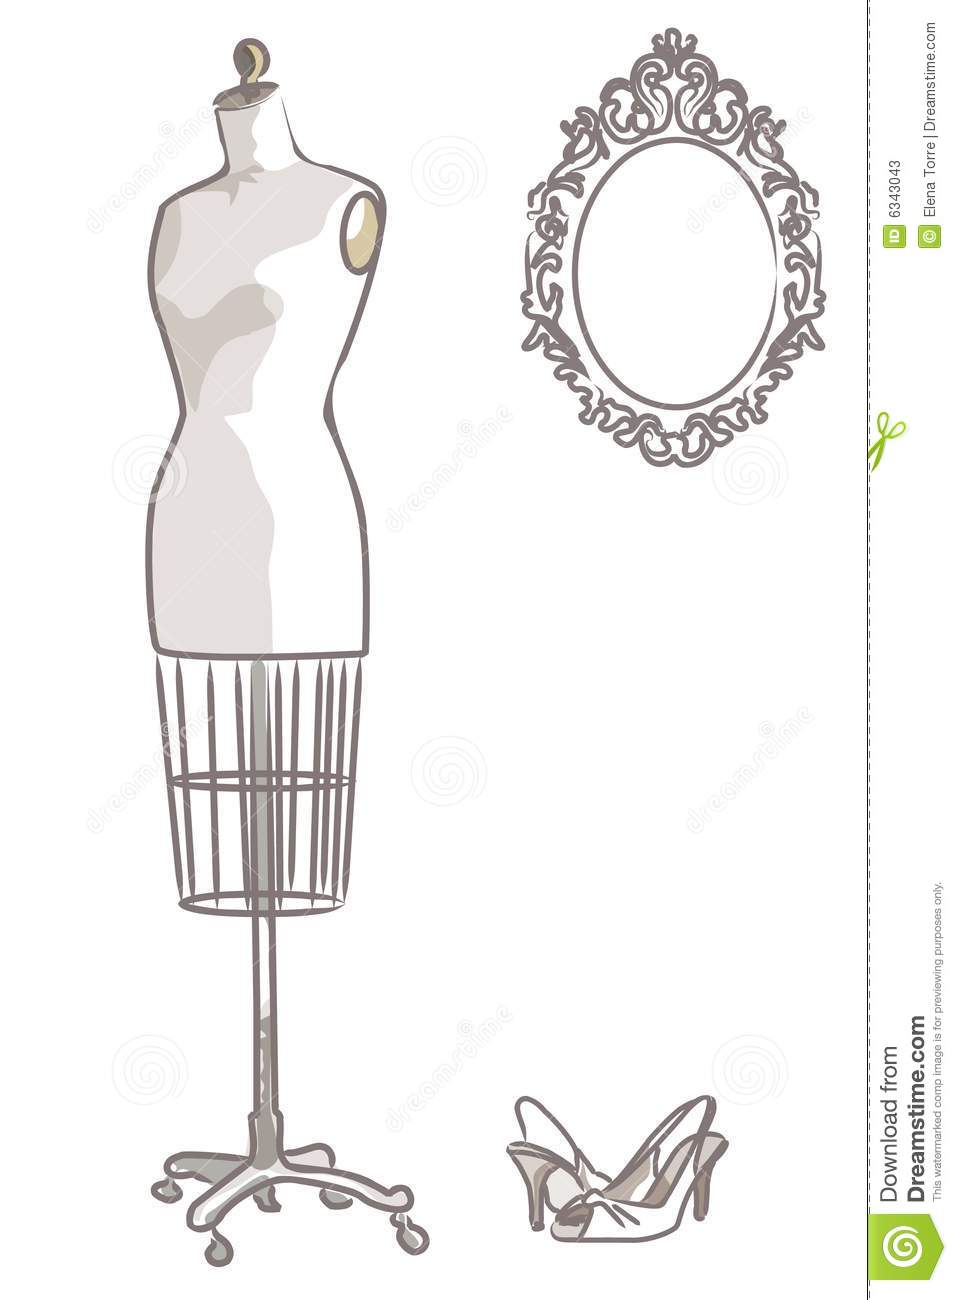 Stock Photos Vintage Mannequin Vector Eps File Image6343043 on dress shoes clip art